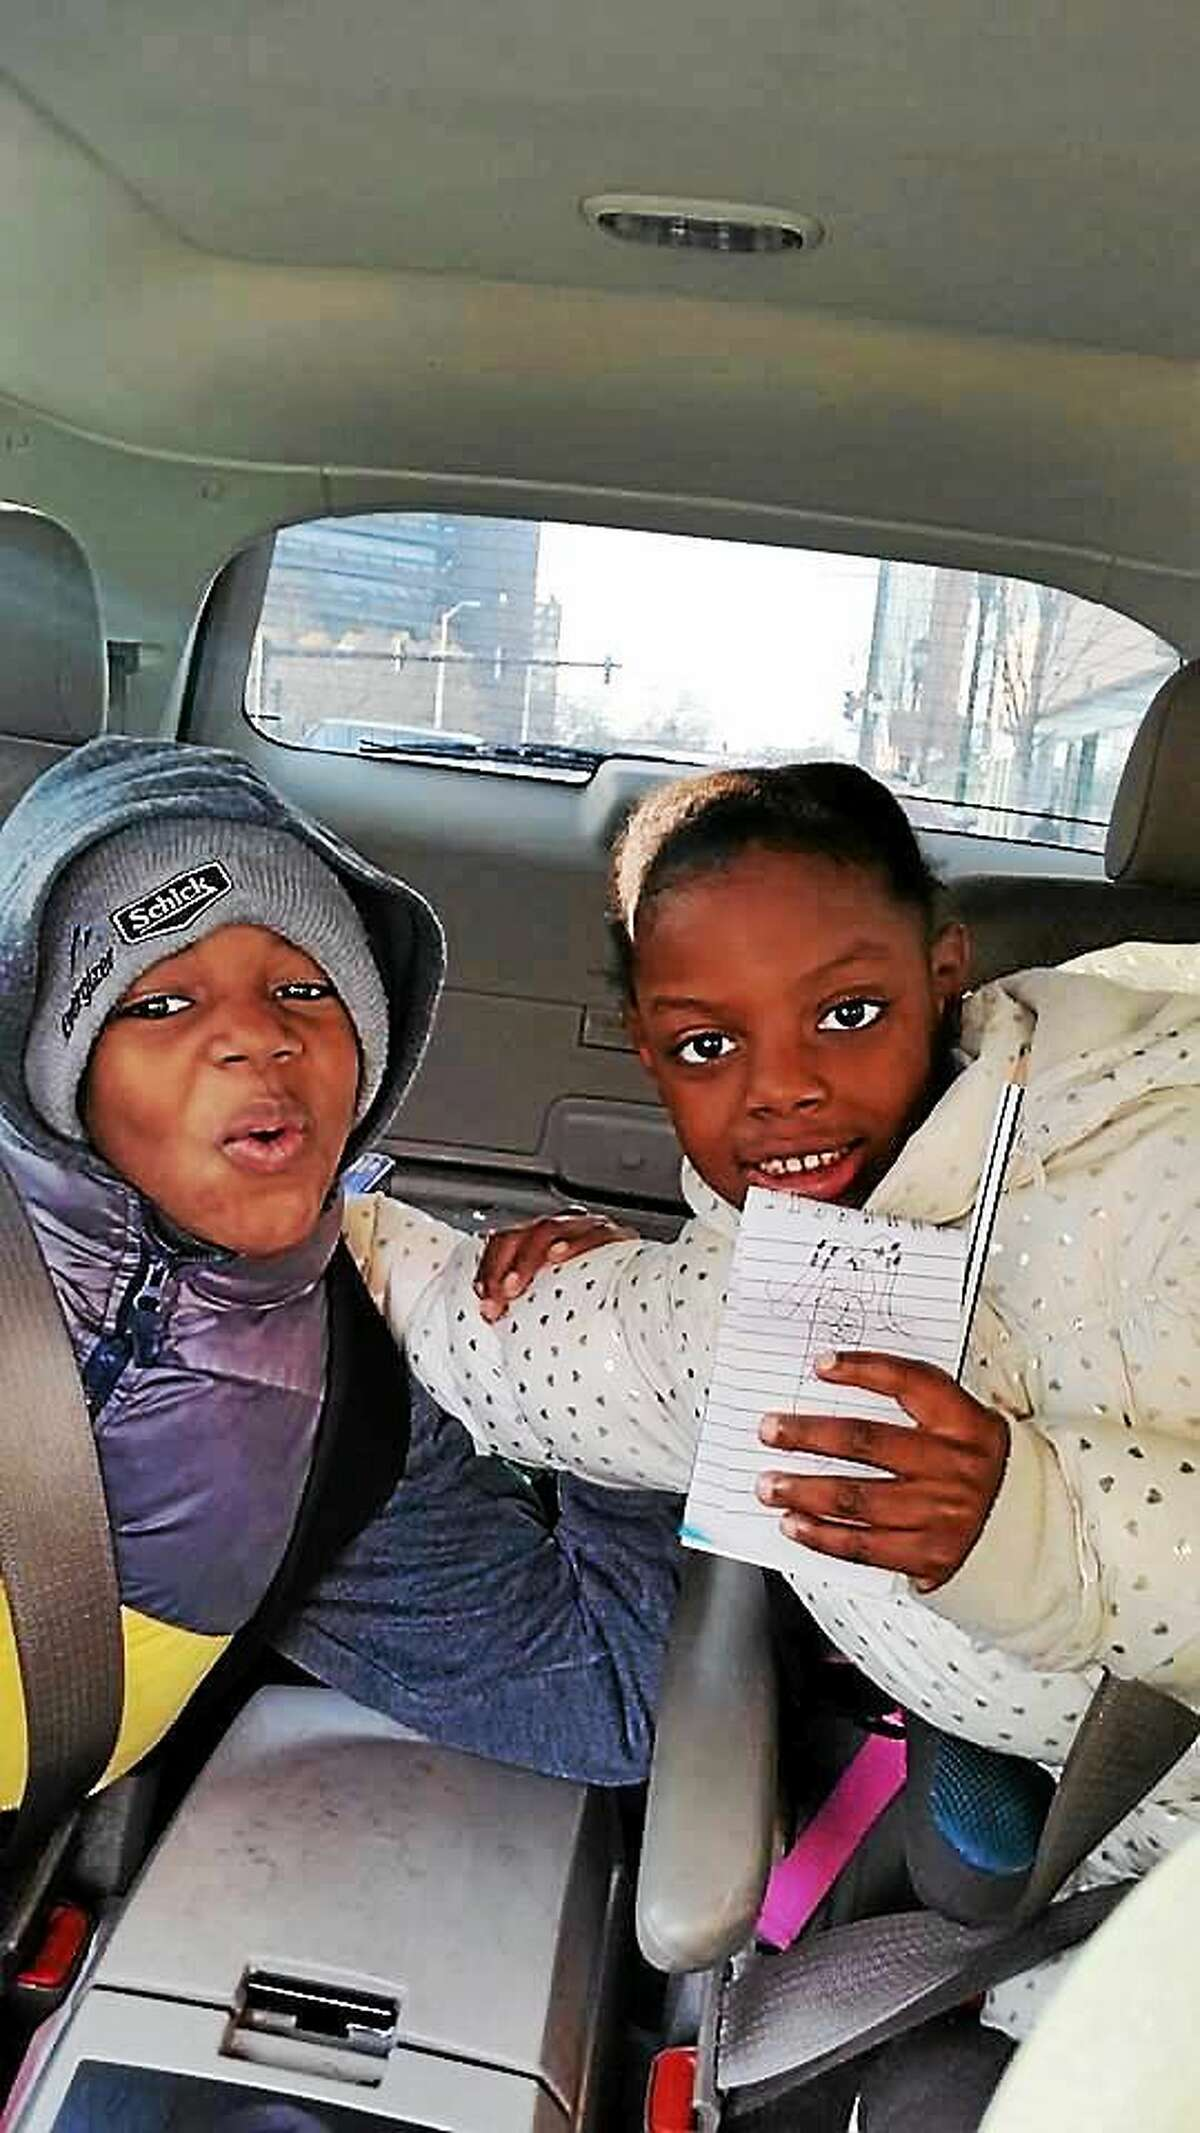 Daaron Moore and Aleisha Moore, in a photo from the Facebook page of LeRoya Moore.